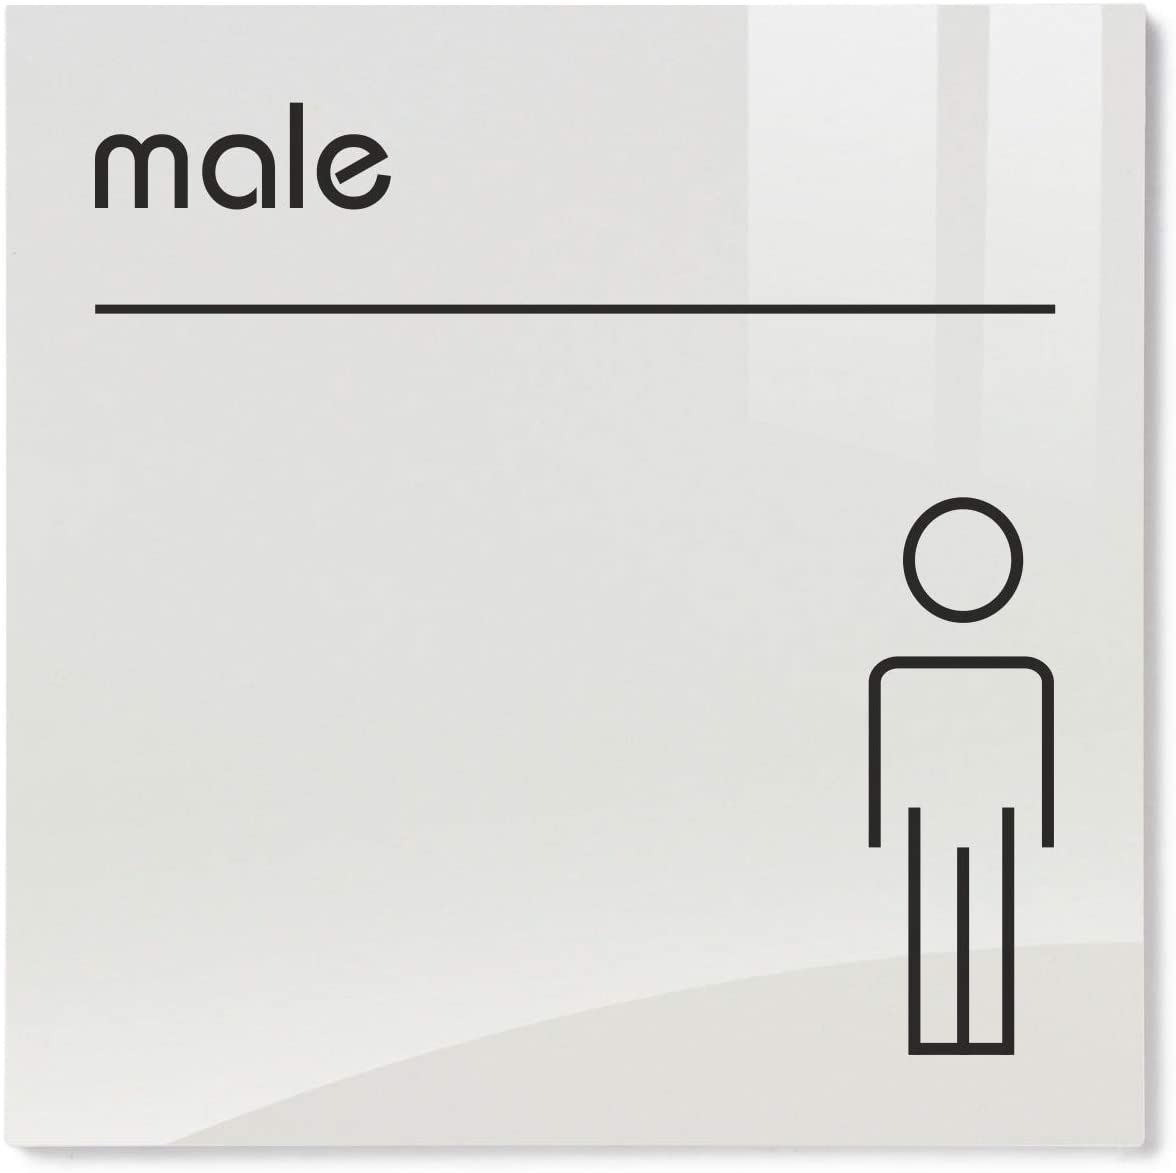 Viro Opal Acrylic Male Restroom Toilet Sign - 200 x 200mm / 8